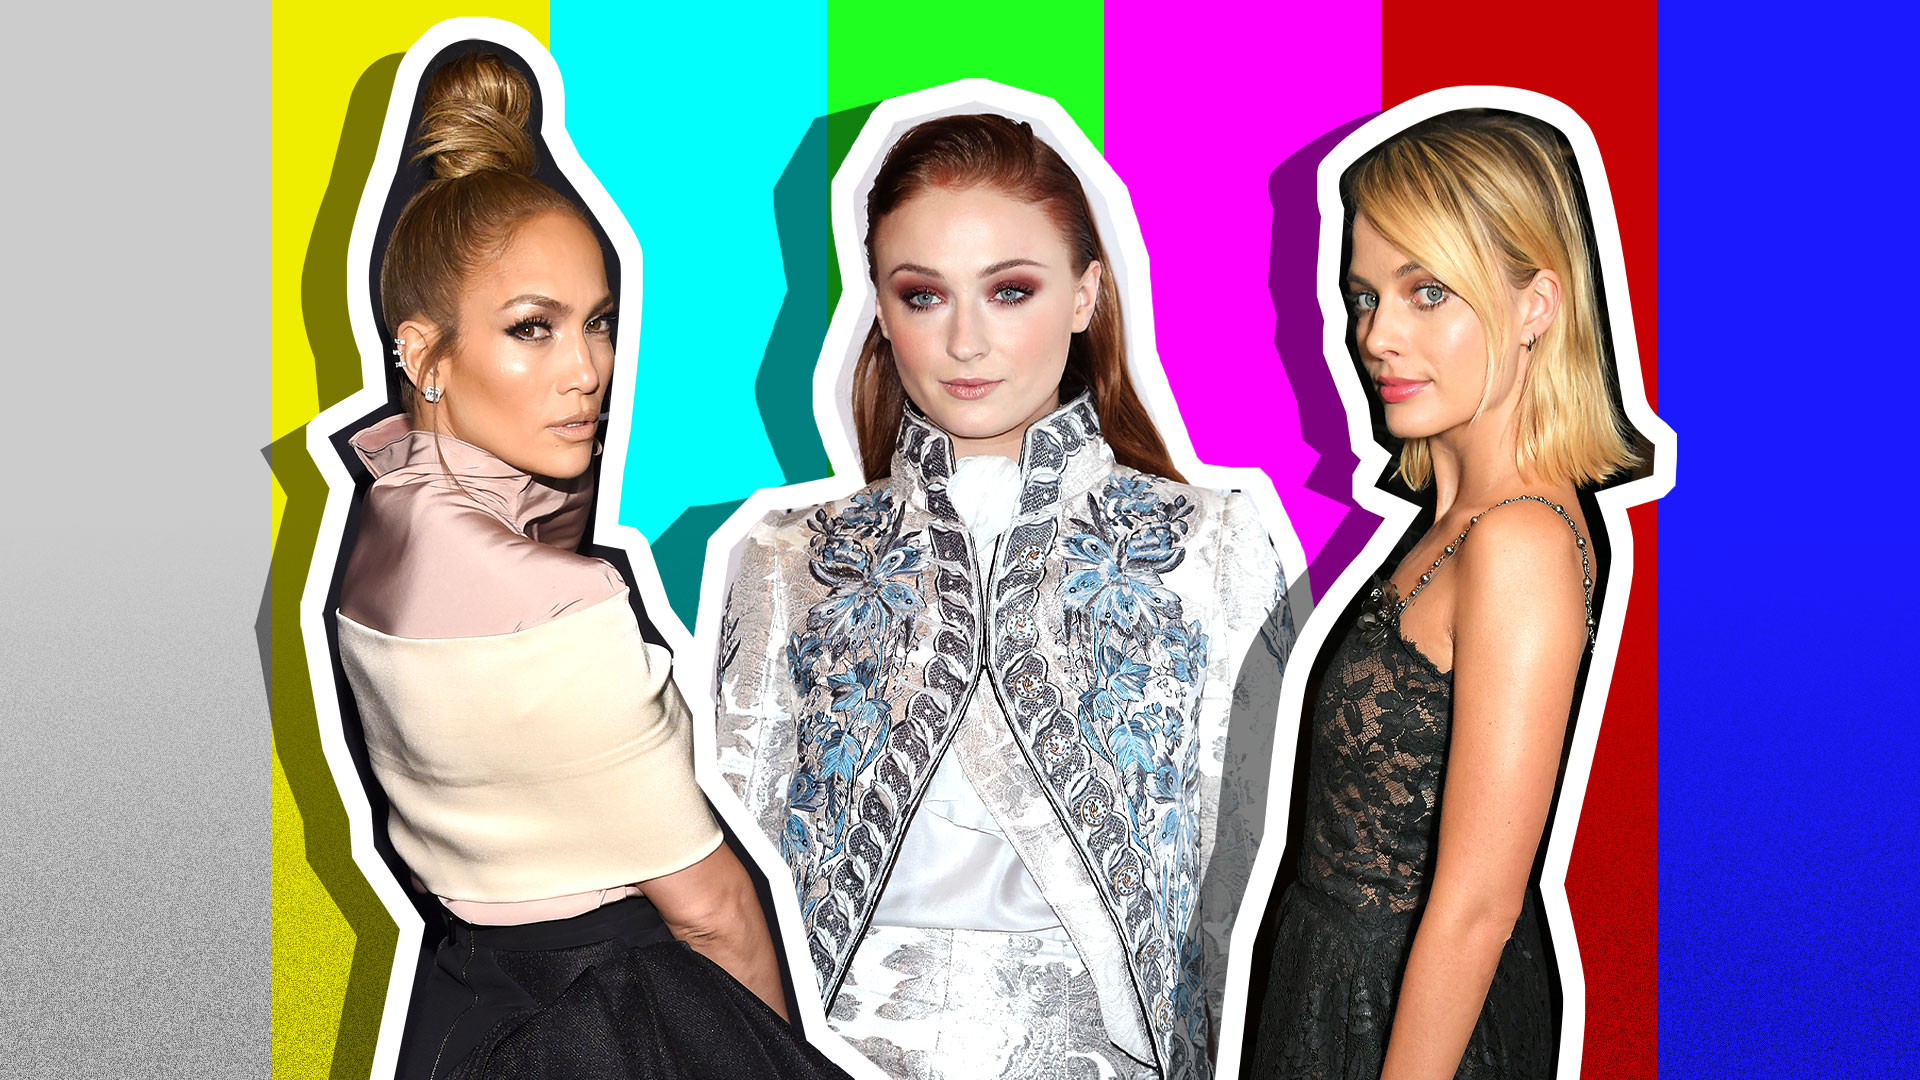 STYLECASTER | Celebs Told to Lose Weight